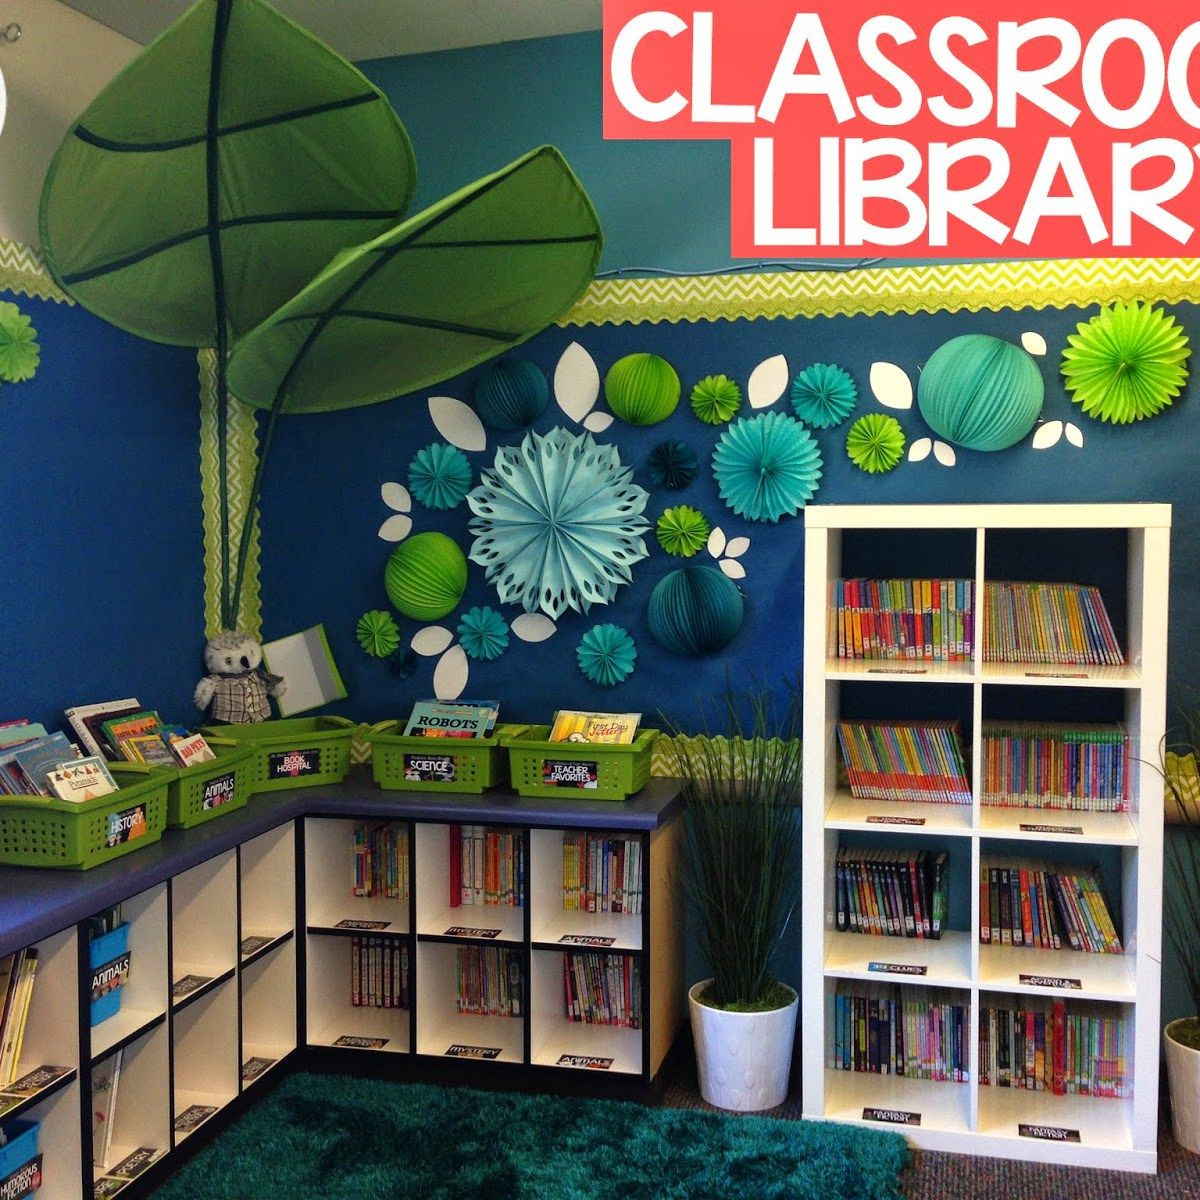 Classroom Design And Organization : Classroom reveal inspiration design